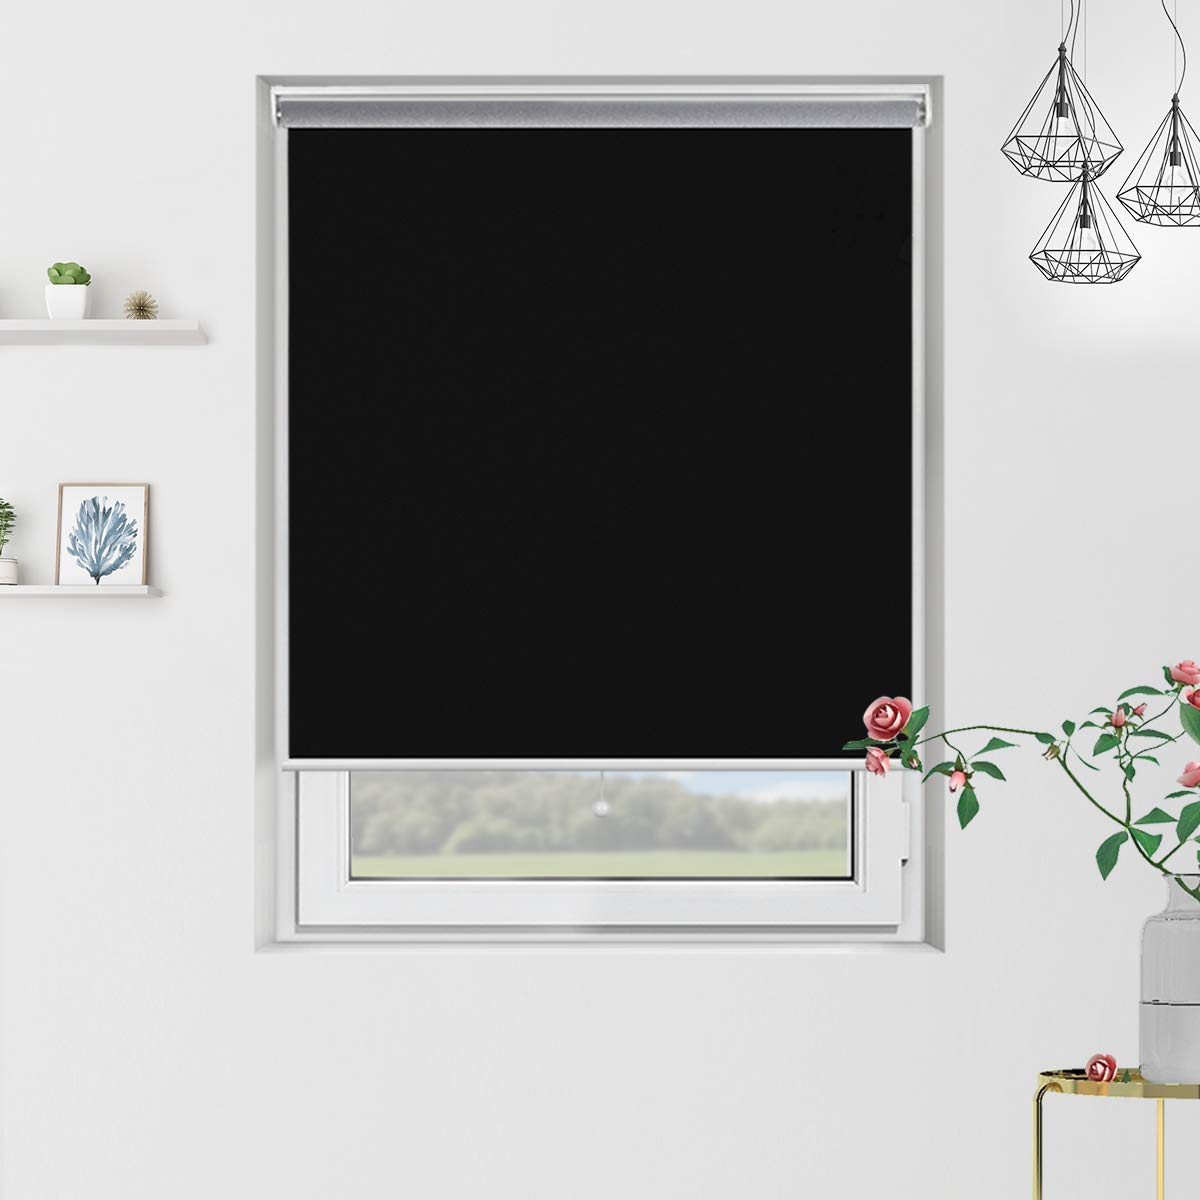 Grandekor Cordless Blackout Roller Blinds and Shades with Spring System, Thermal and Room Darkening for Window Indoor Use, Black, 31 x 72 inch by Grandekor